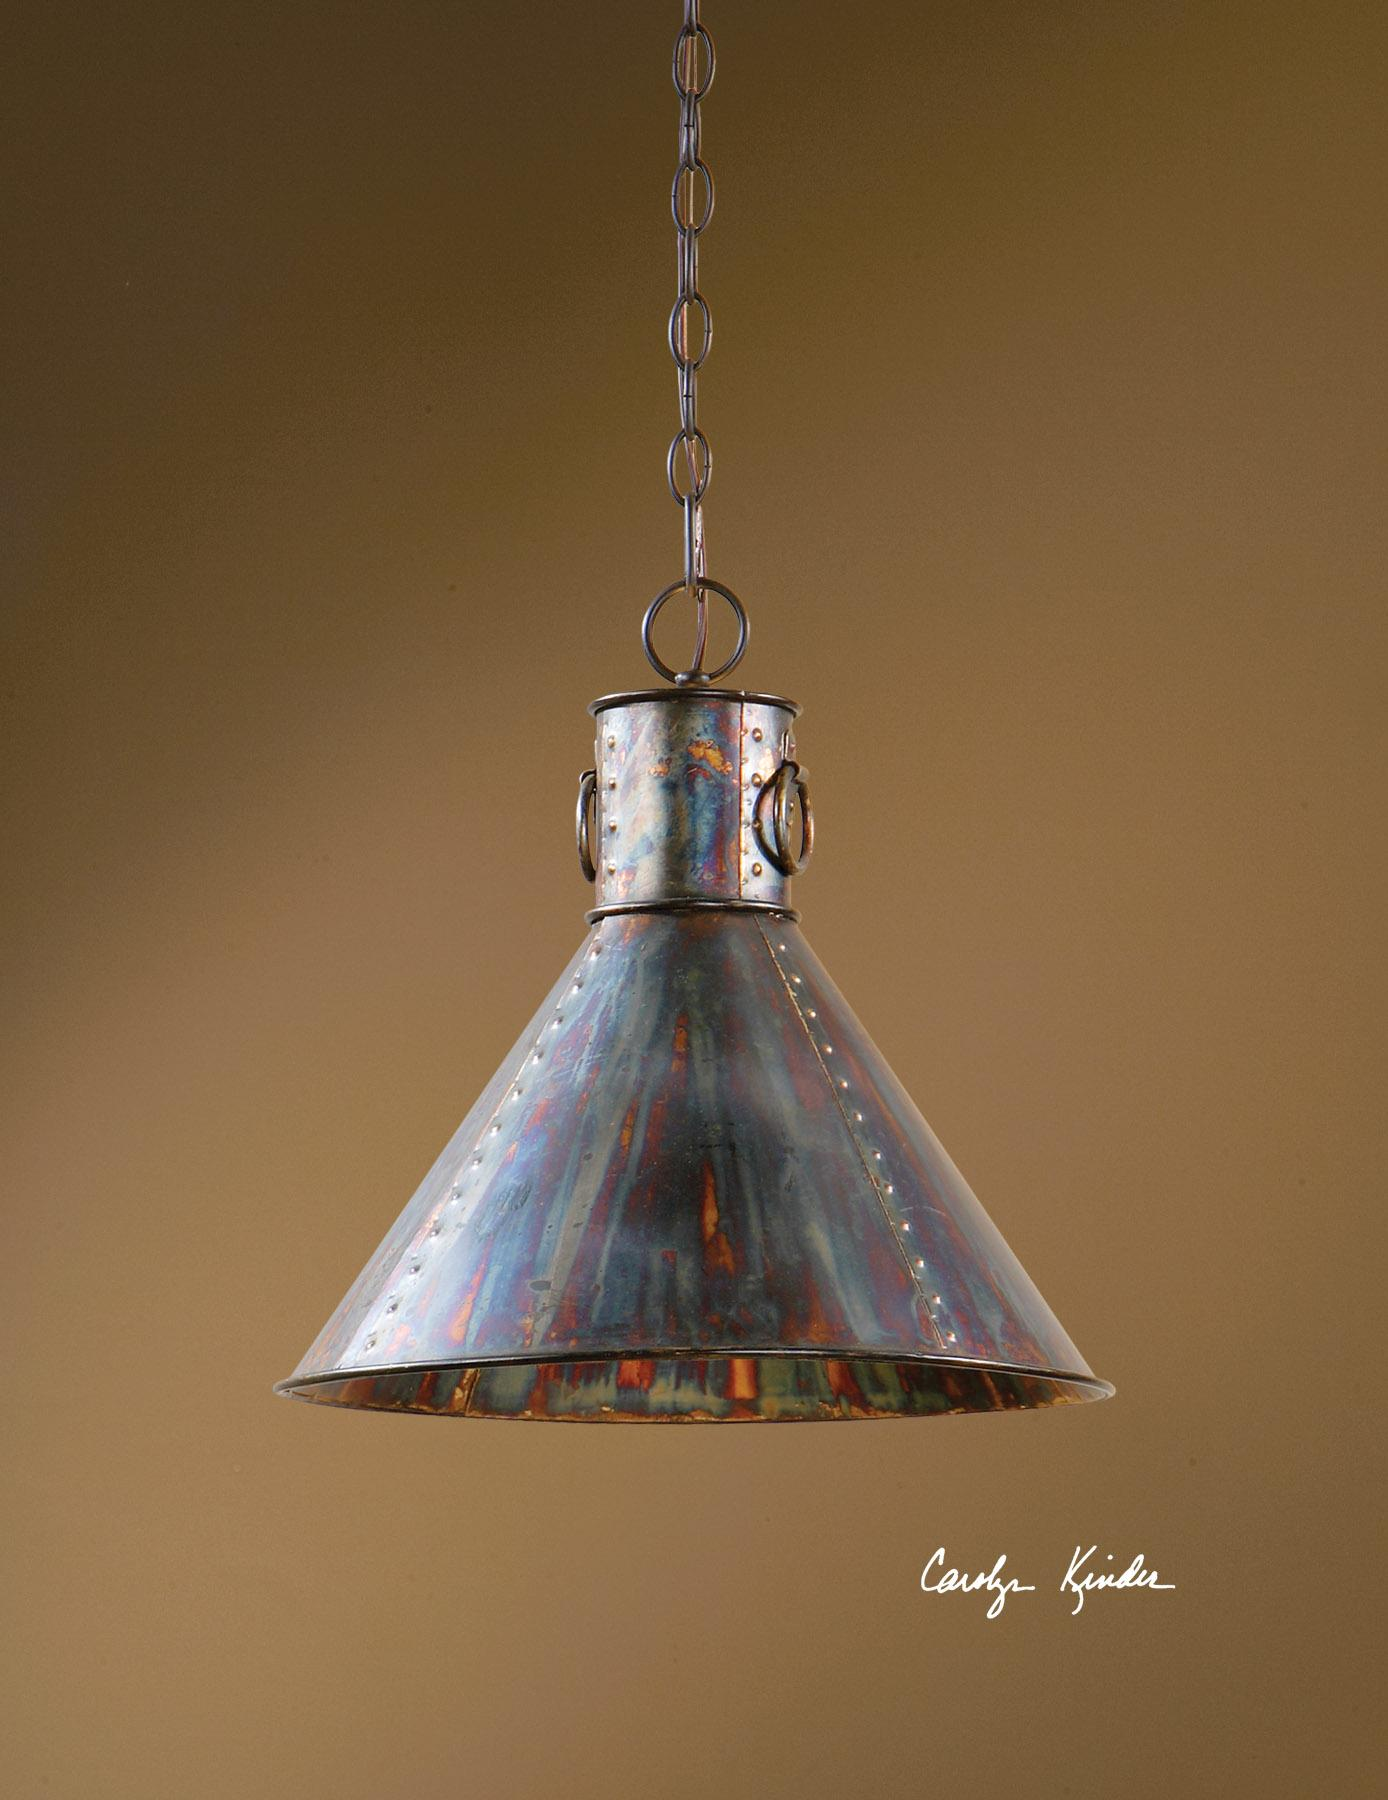 Uttermost Lighting Fixtures Levone 1 Light Pendant - Item Number: 21923